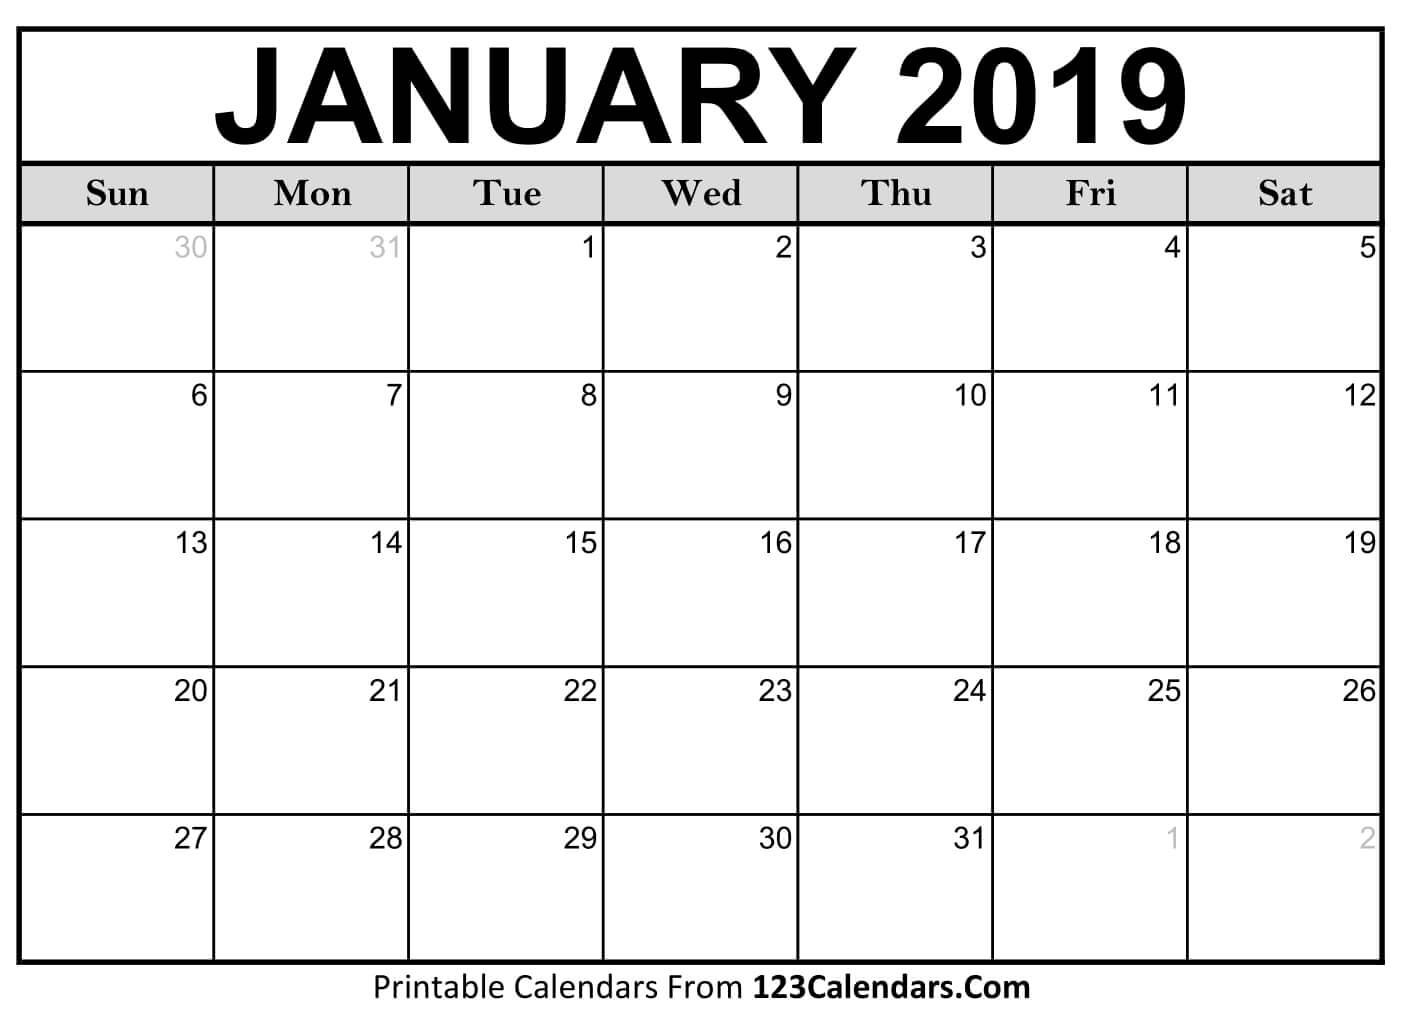 2019 January Calendar Printable - Printable Calendar 2019| Blank Calendar 2019 Jan Feb